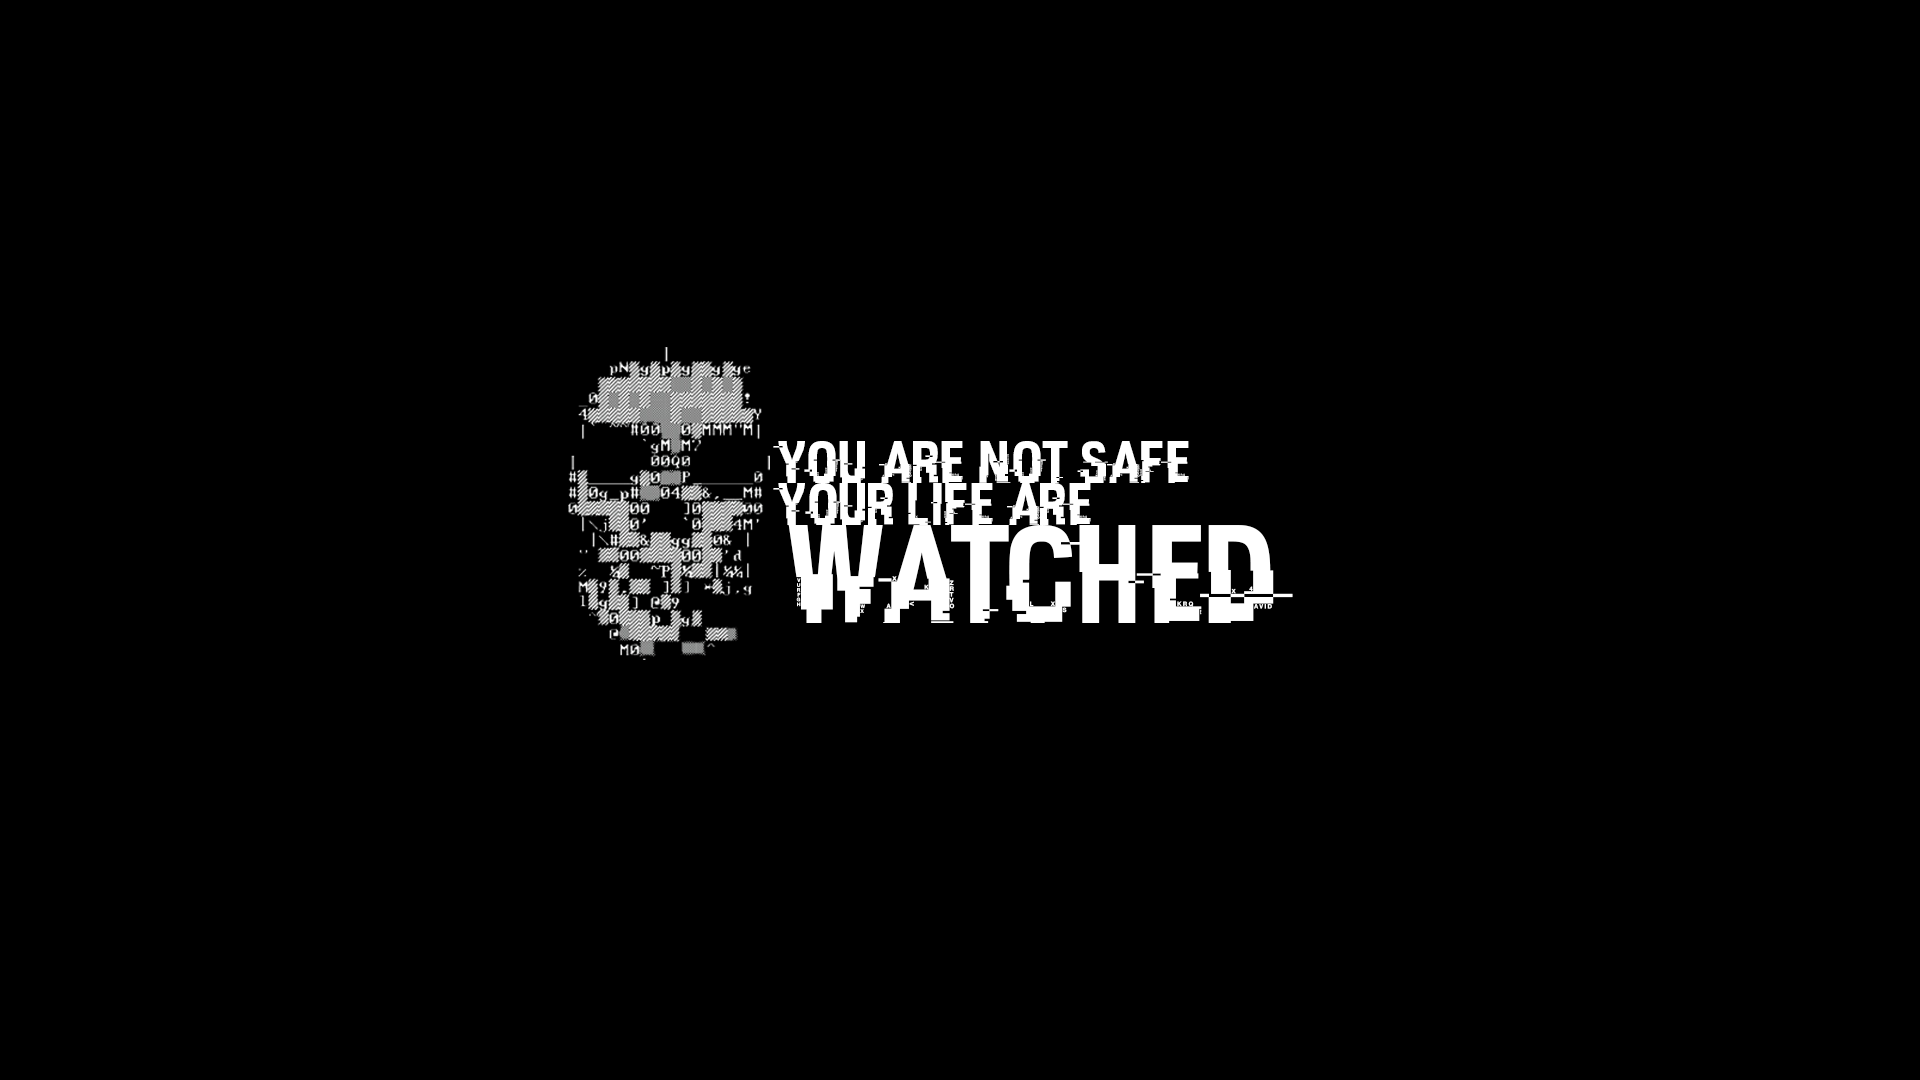 DedSec wallpaper watch dogs by tomlubin 1920x1080